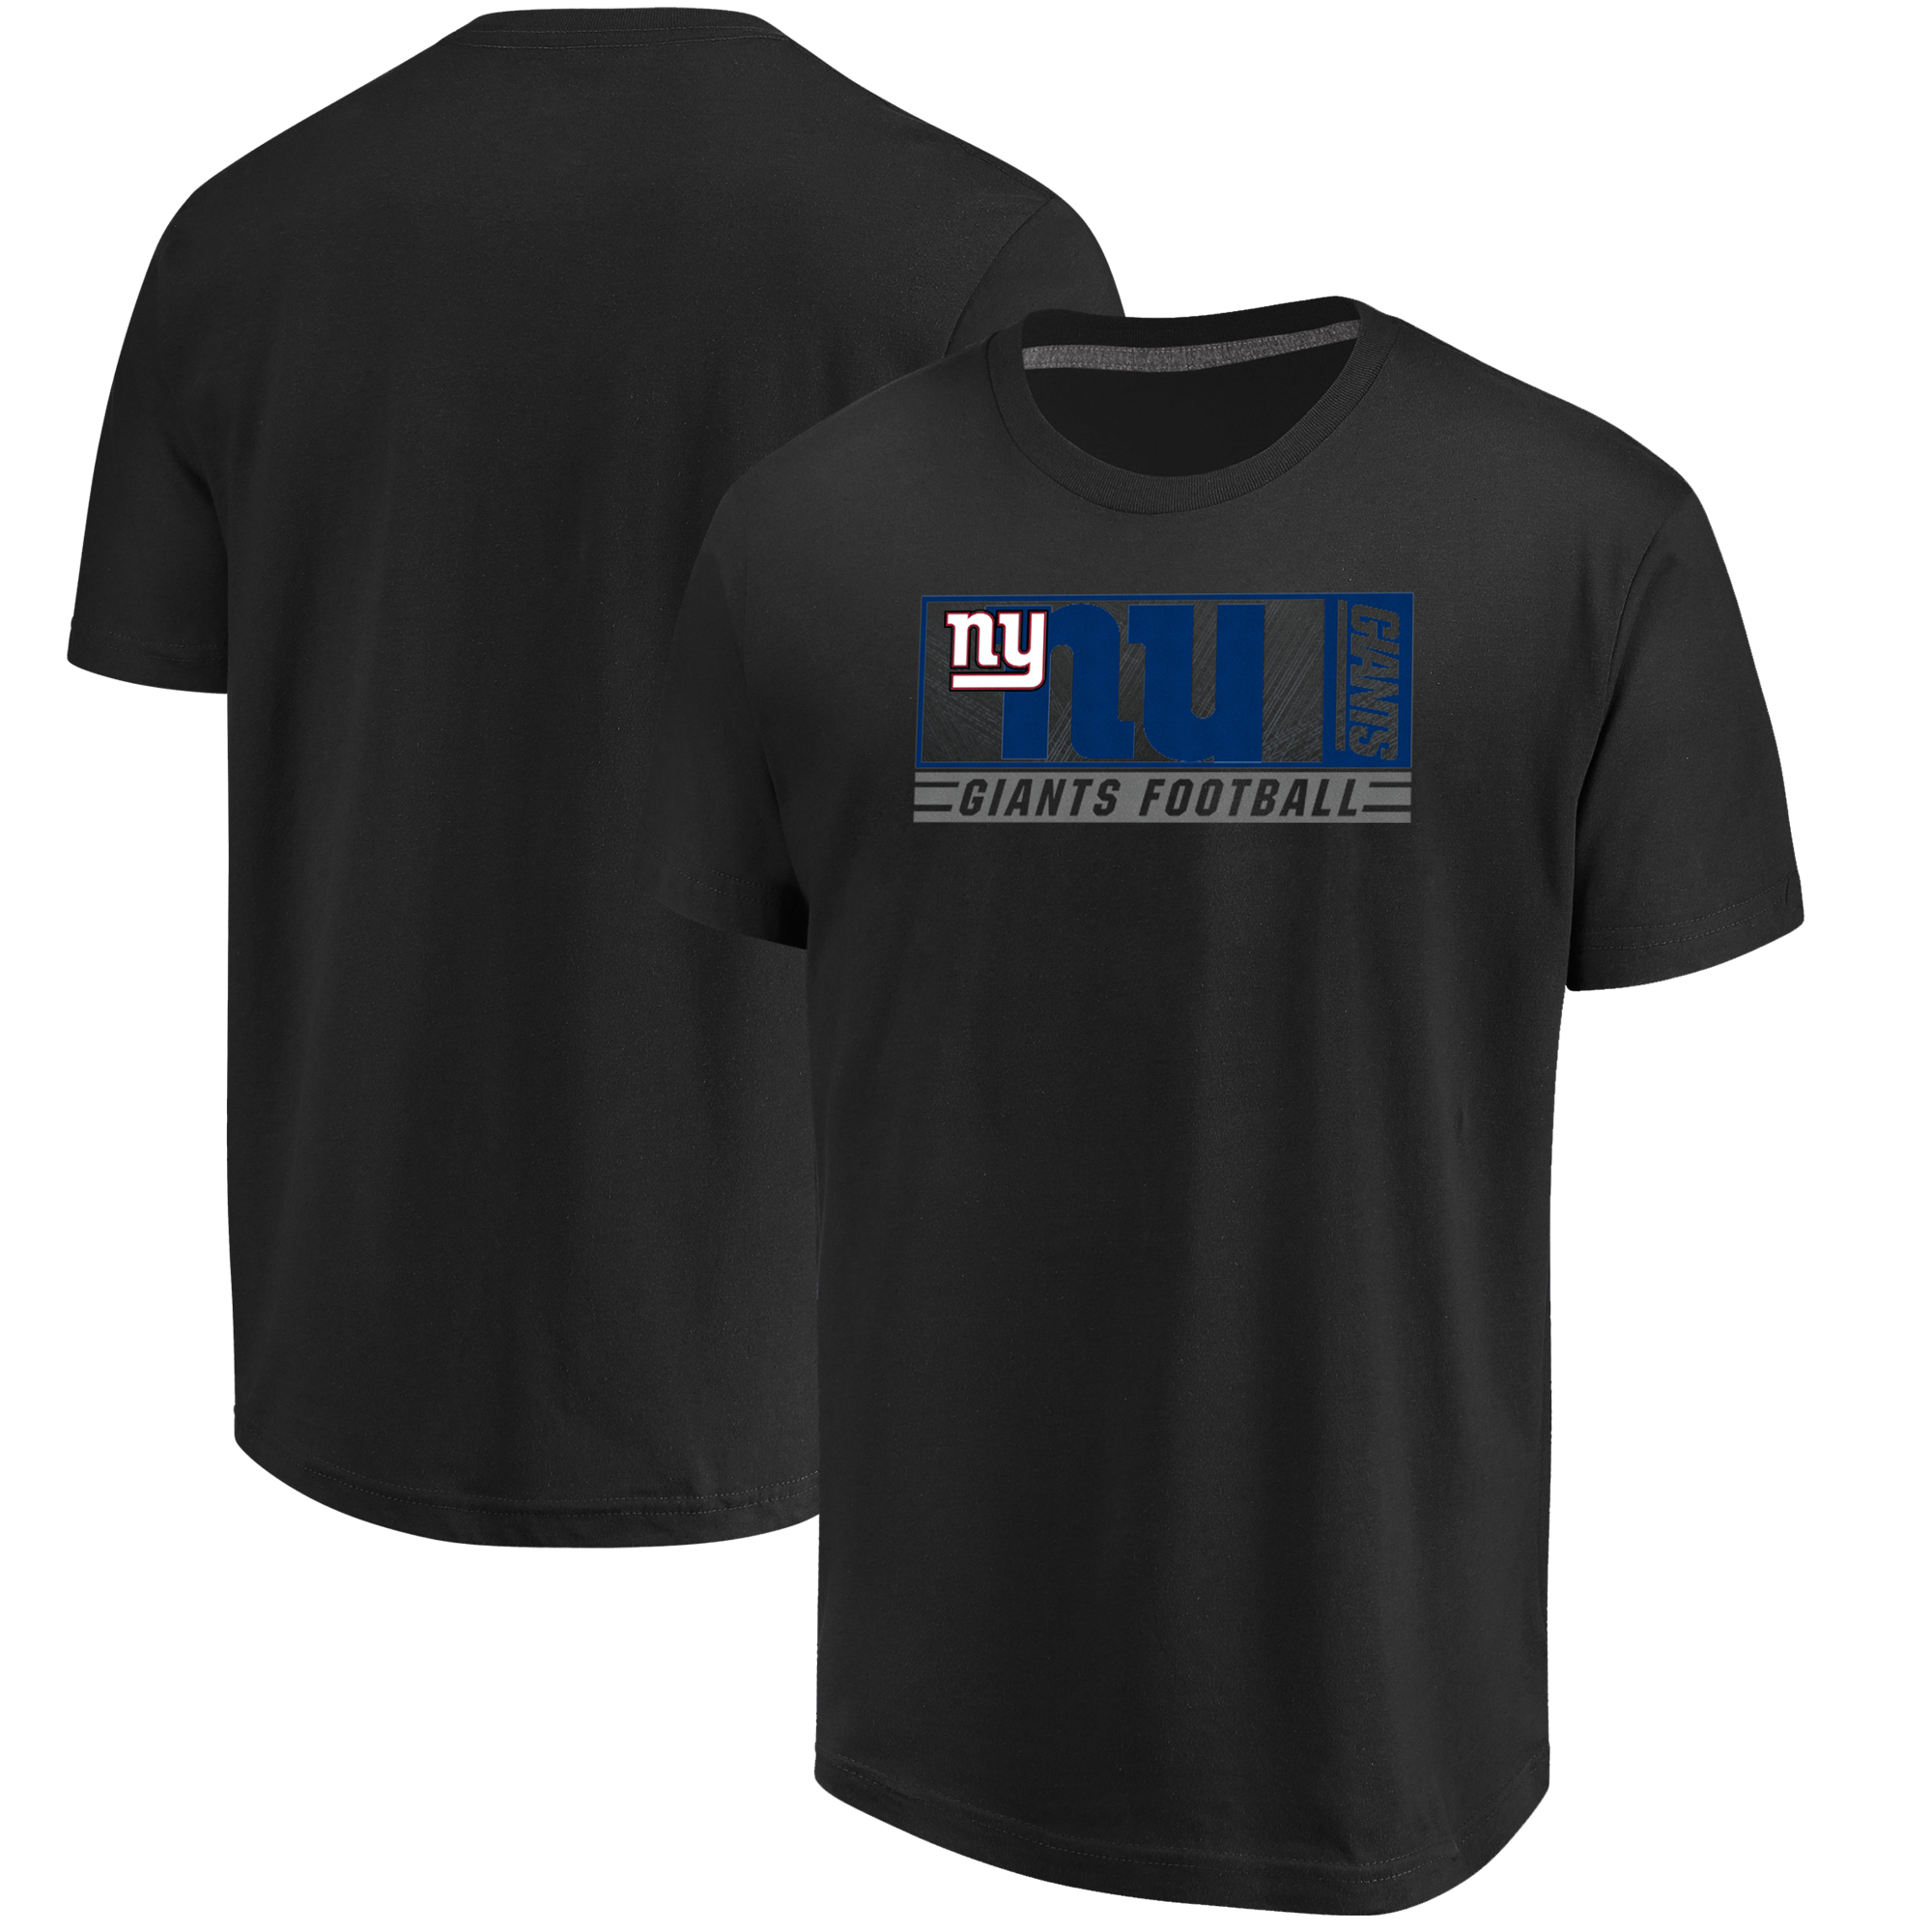 New York Giants Majestic Hook and Ladder T-Shirt - Black